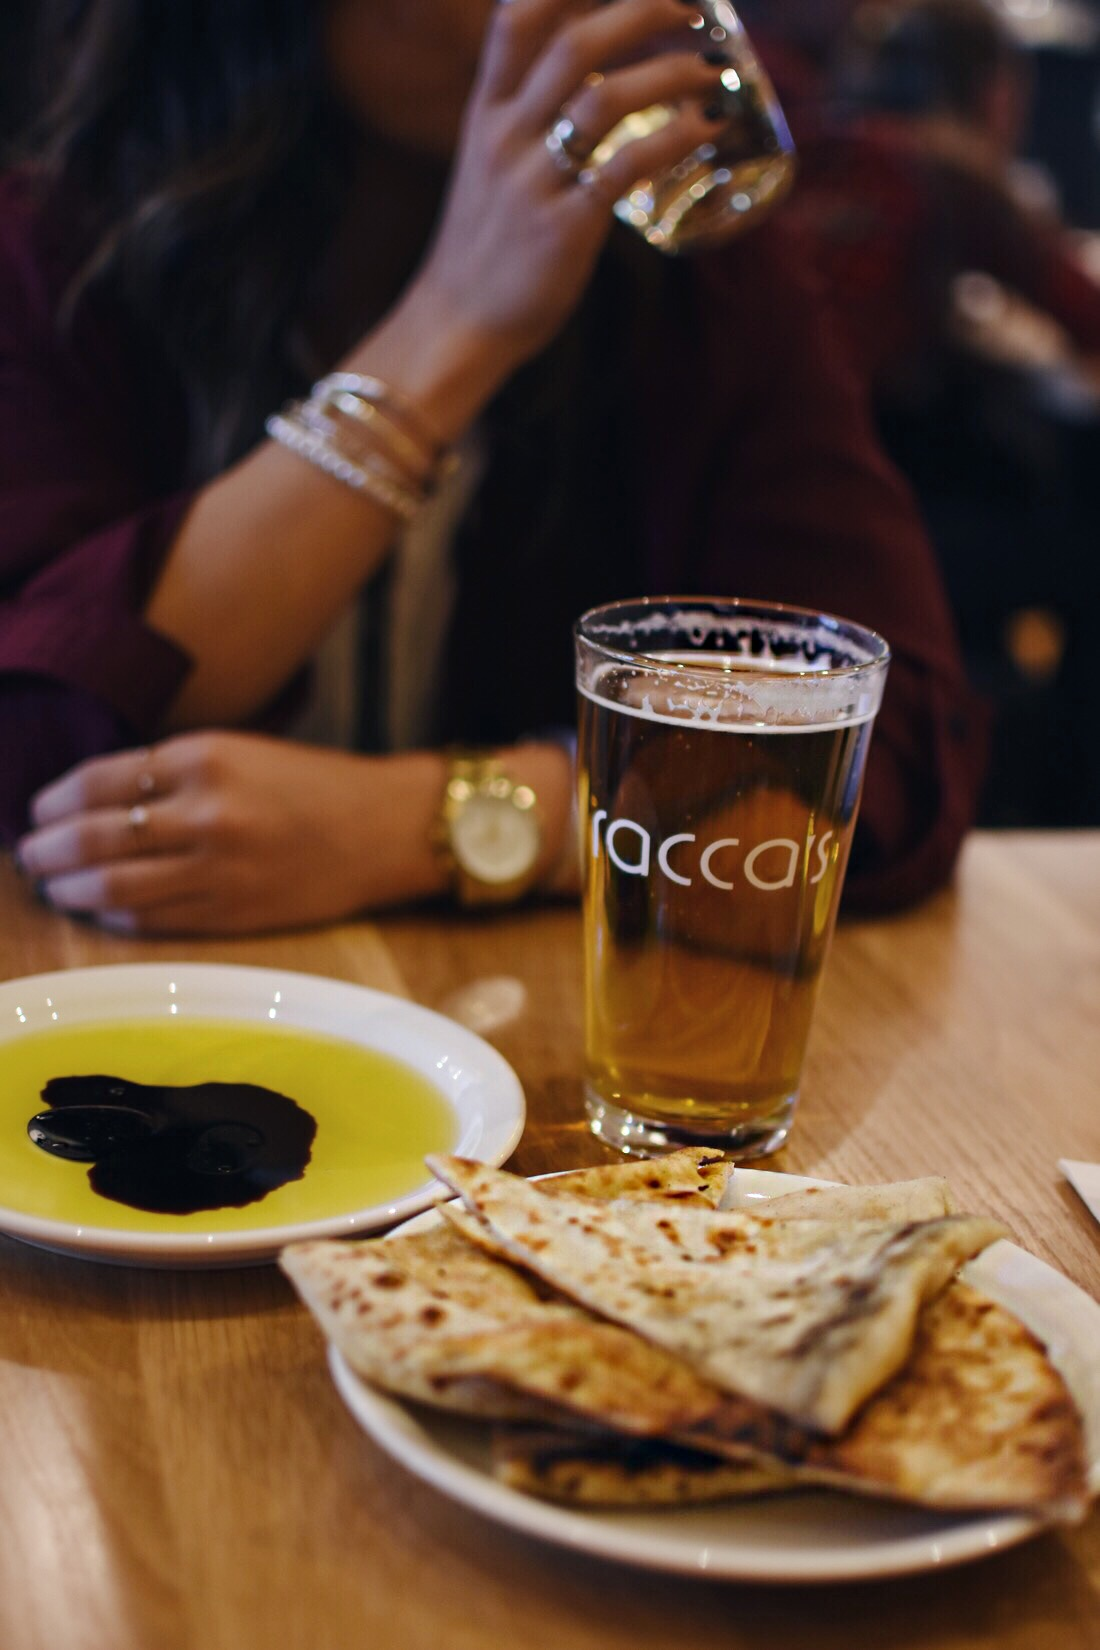 Racca's Pizzeria Napoletana at Colorado Mills Mall